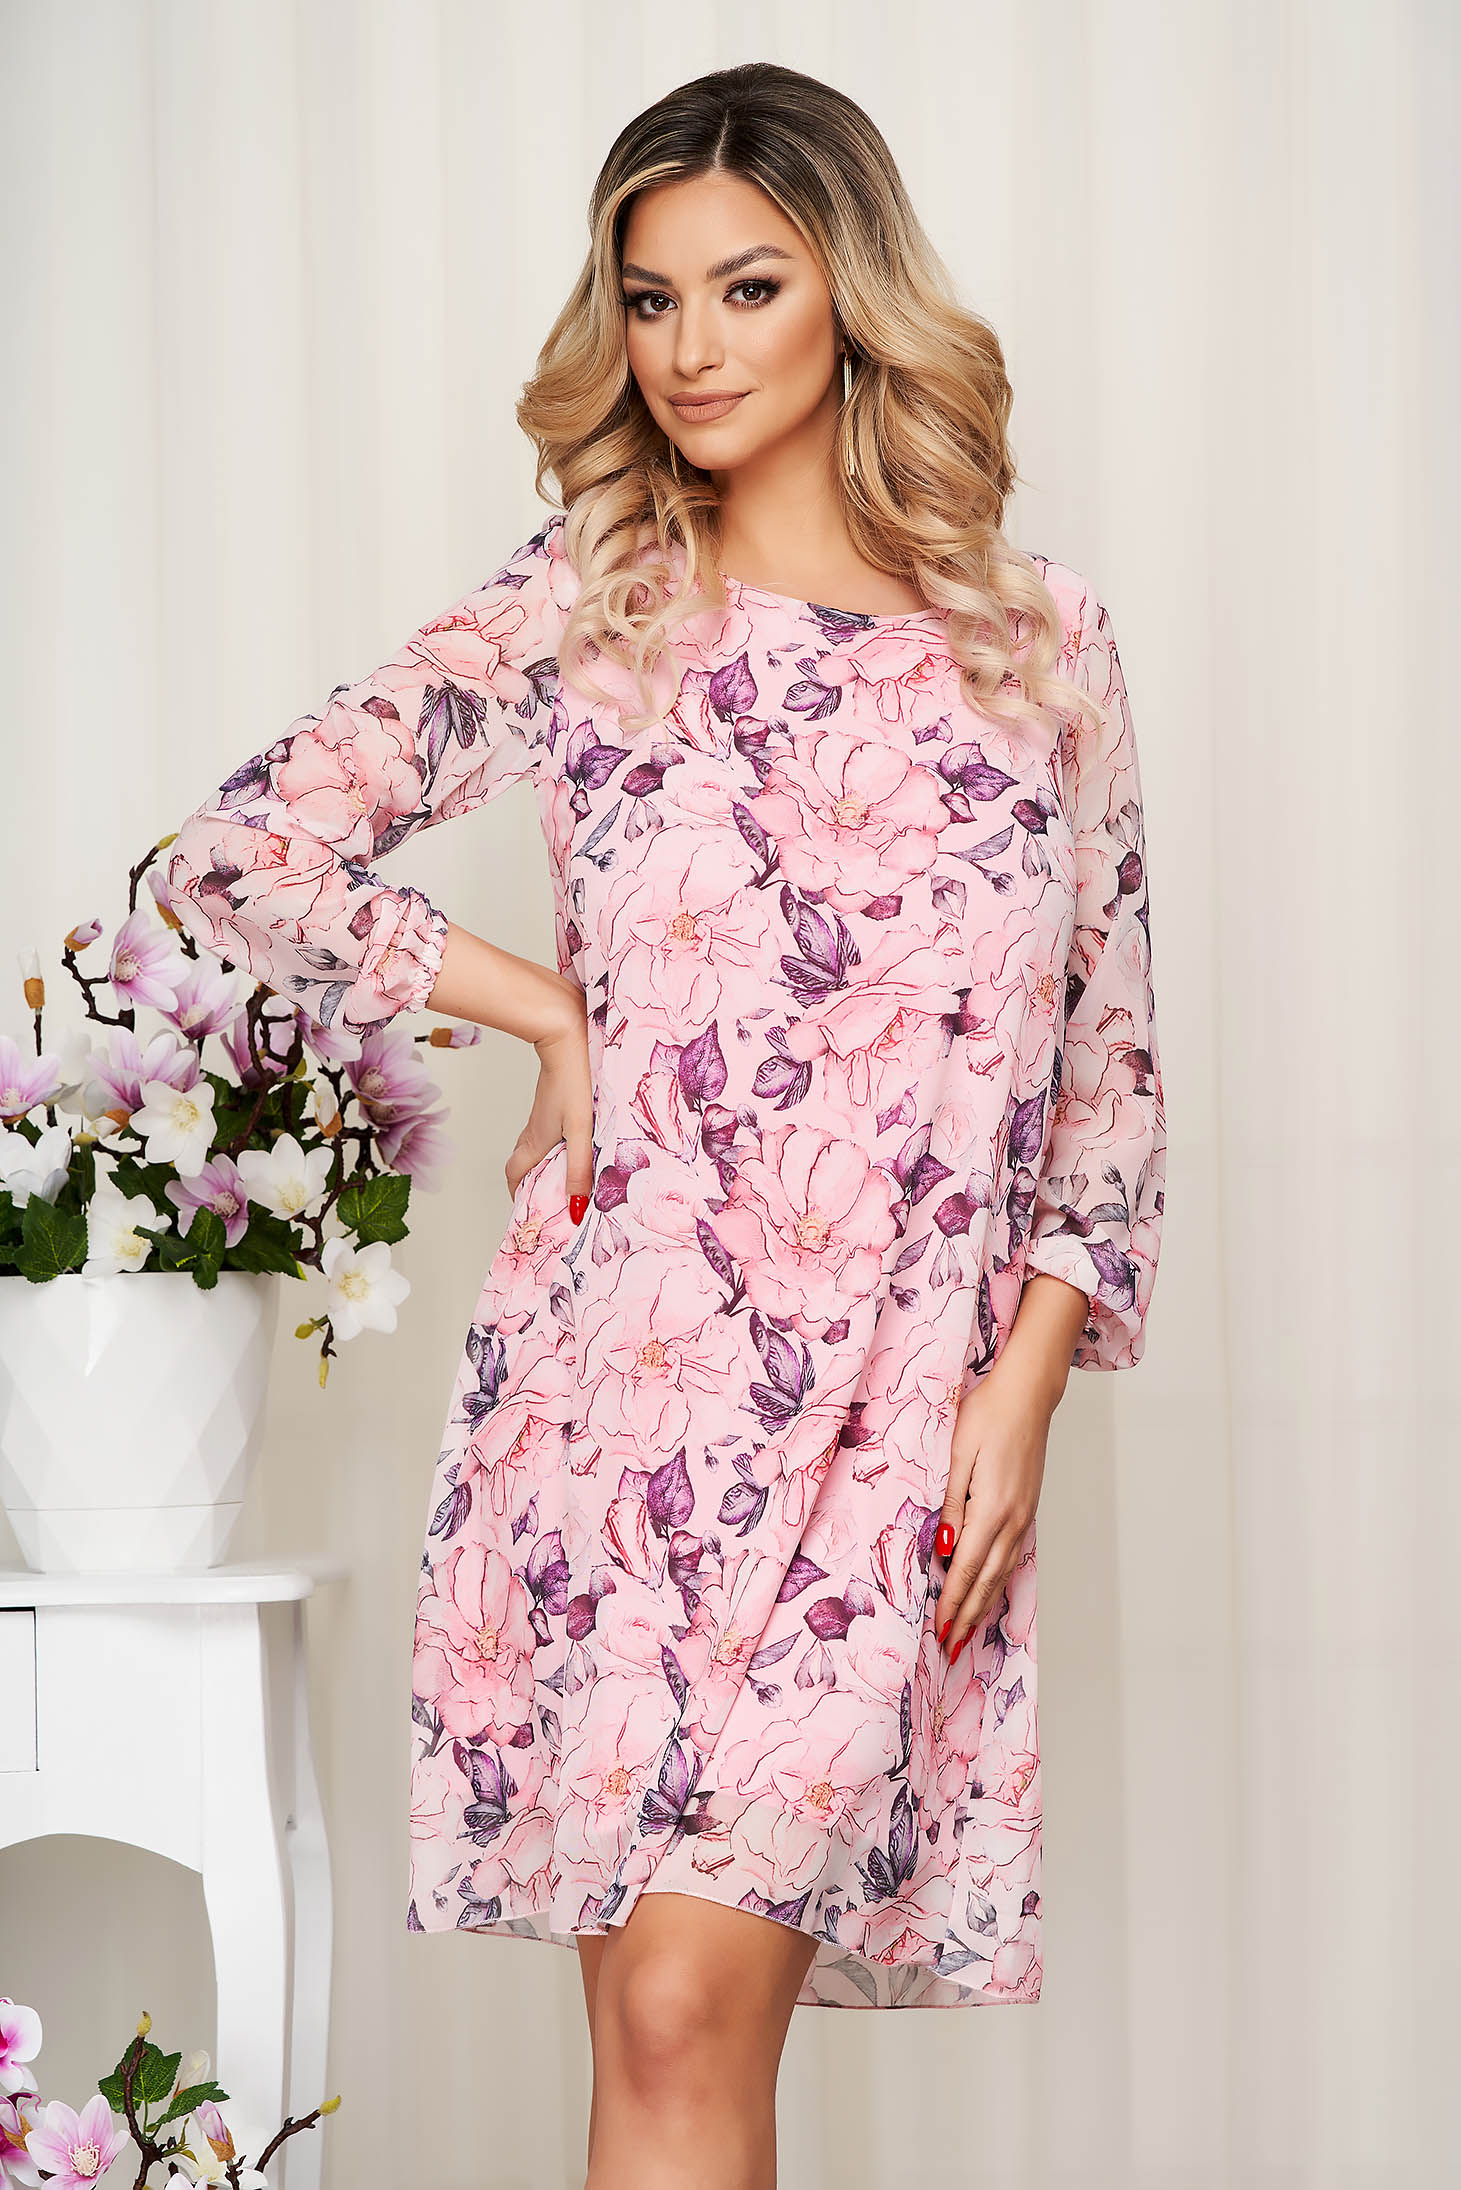 Lightpink dress from veil fabric with floral print with inside lining